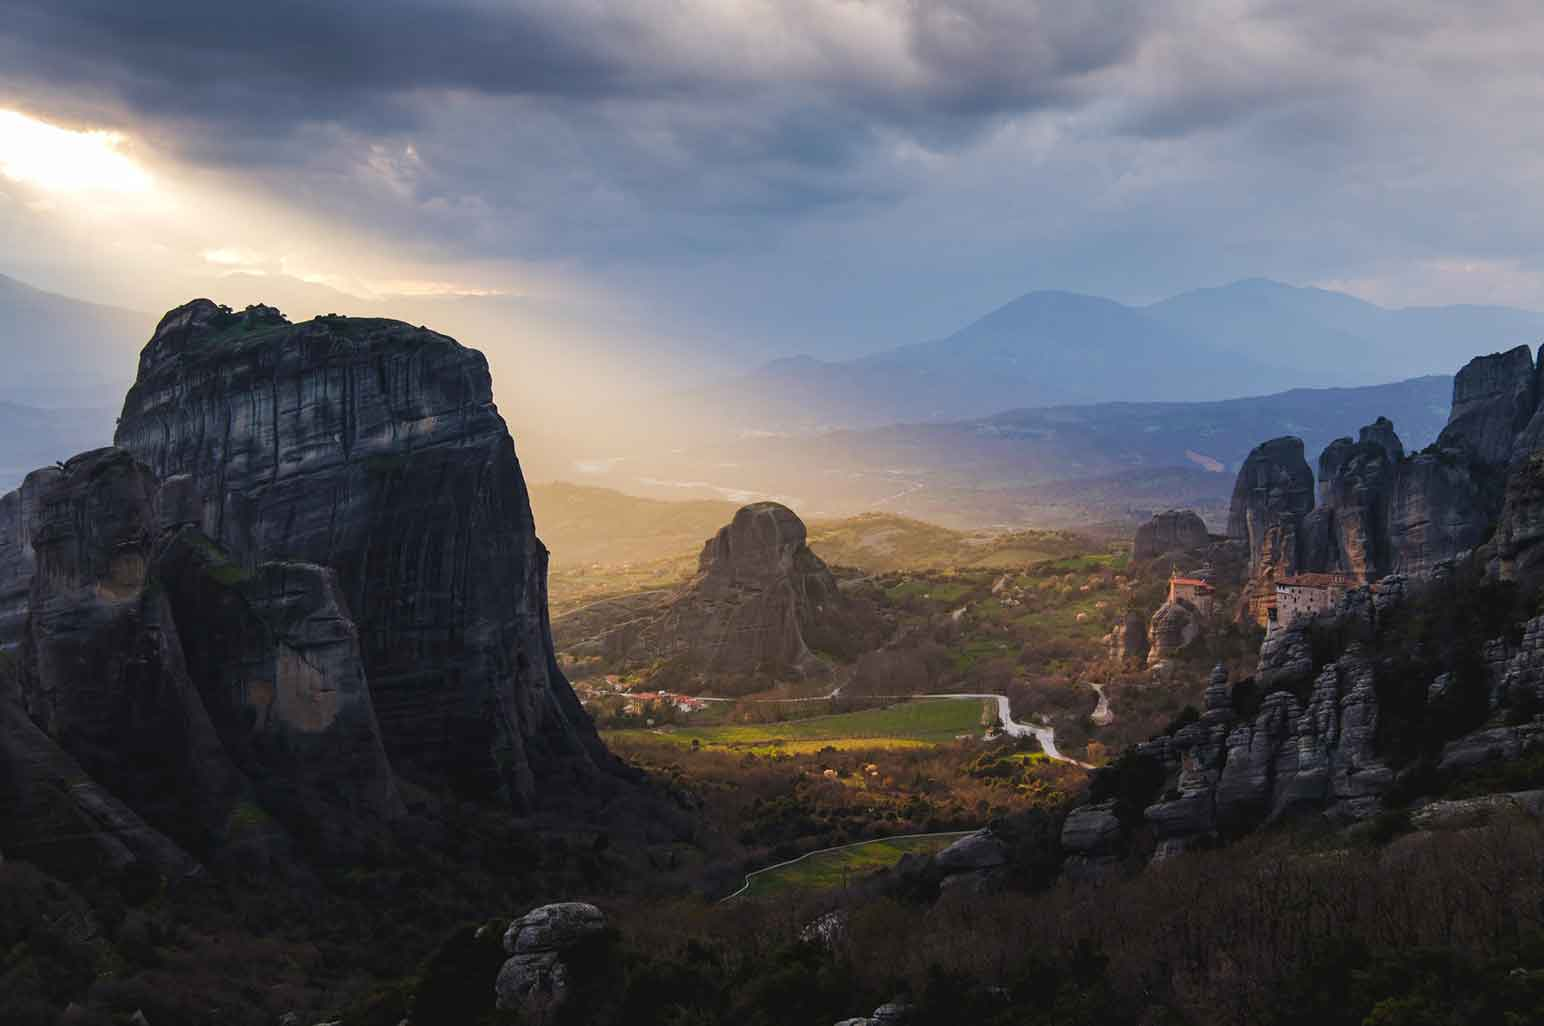 Discover Greece: Top 10 Places You Need to Visit in Greece - Meteora